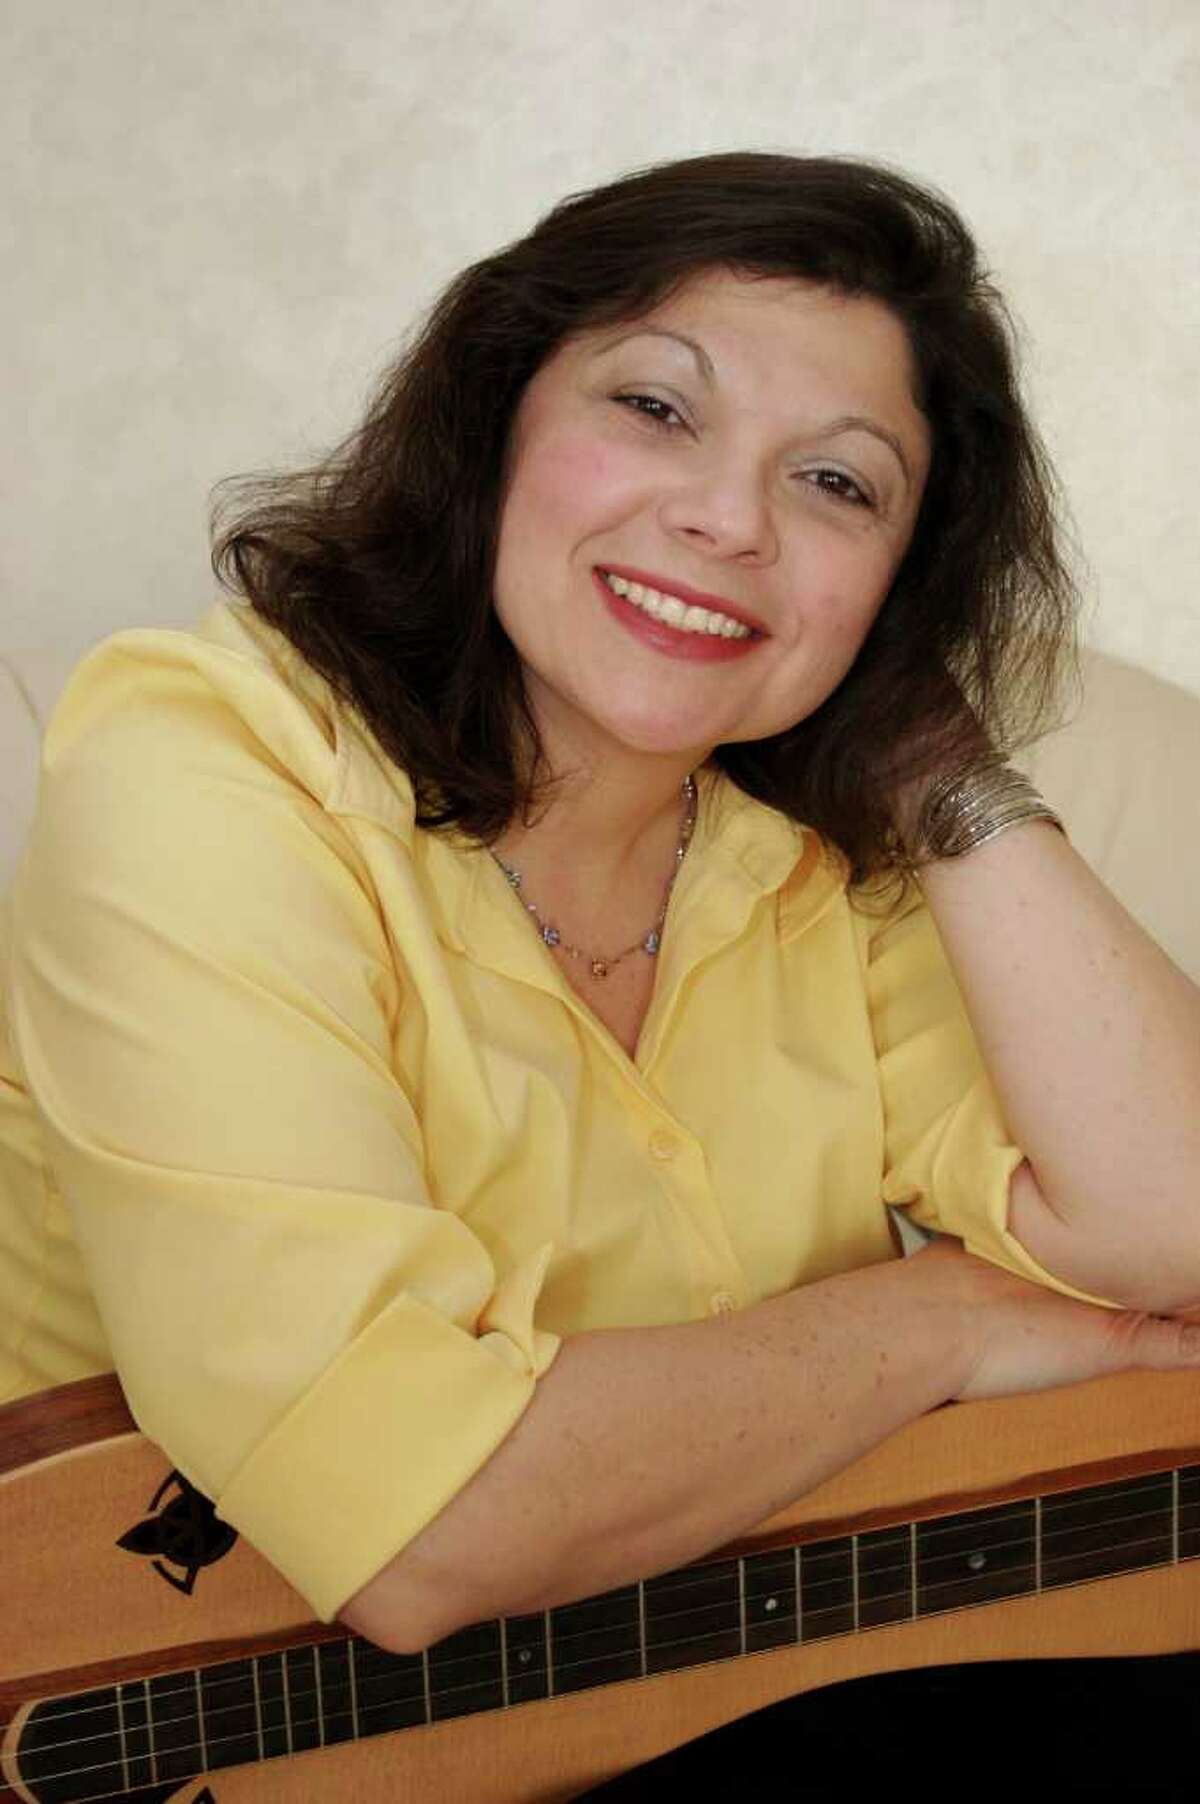 Thomasina Levy, shown here, will perform with Robert Brereton on Saturday, April 9, at Family Music Night in Sherman.